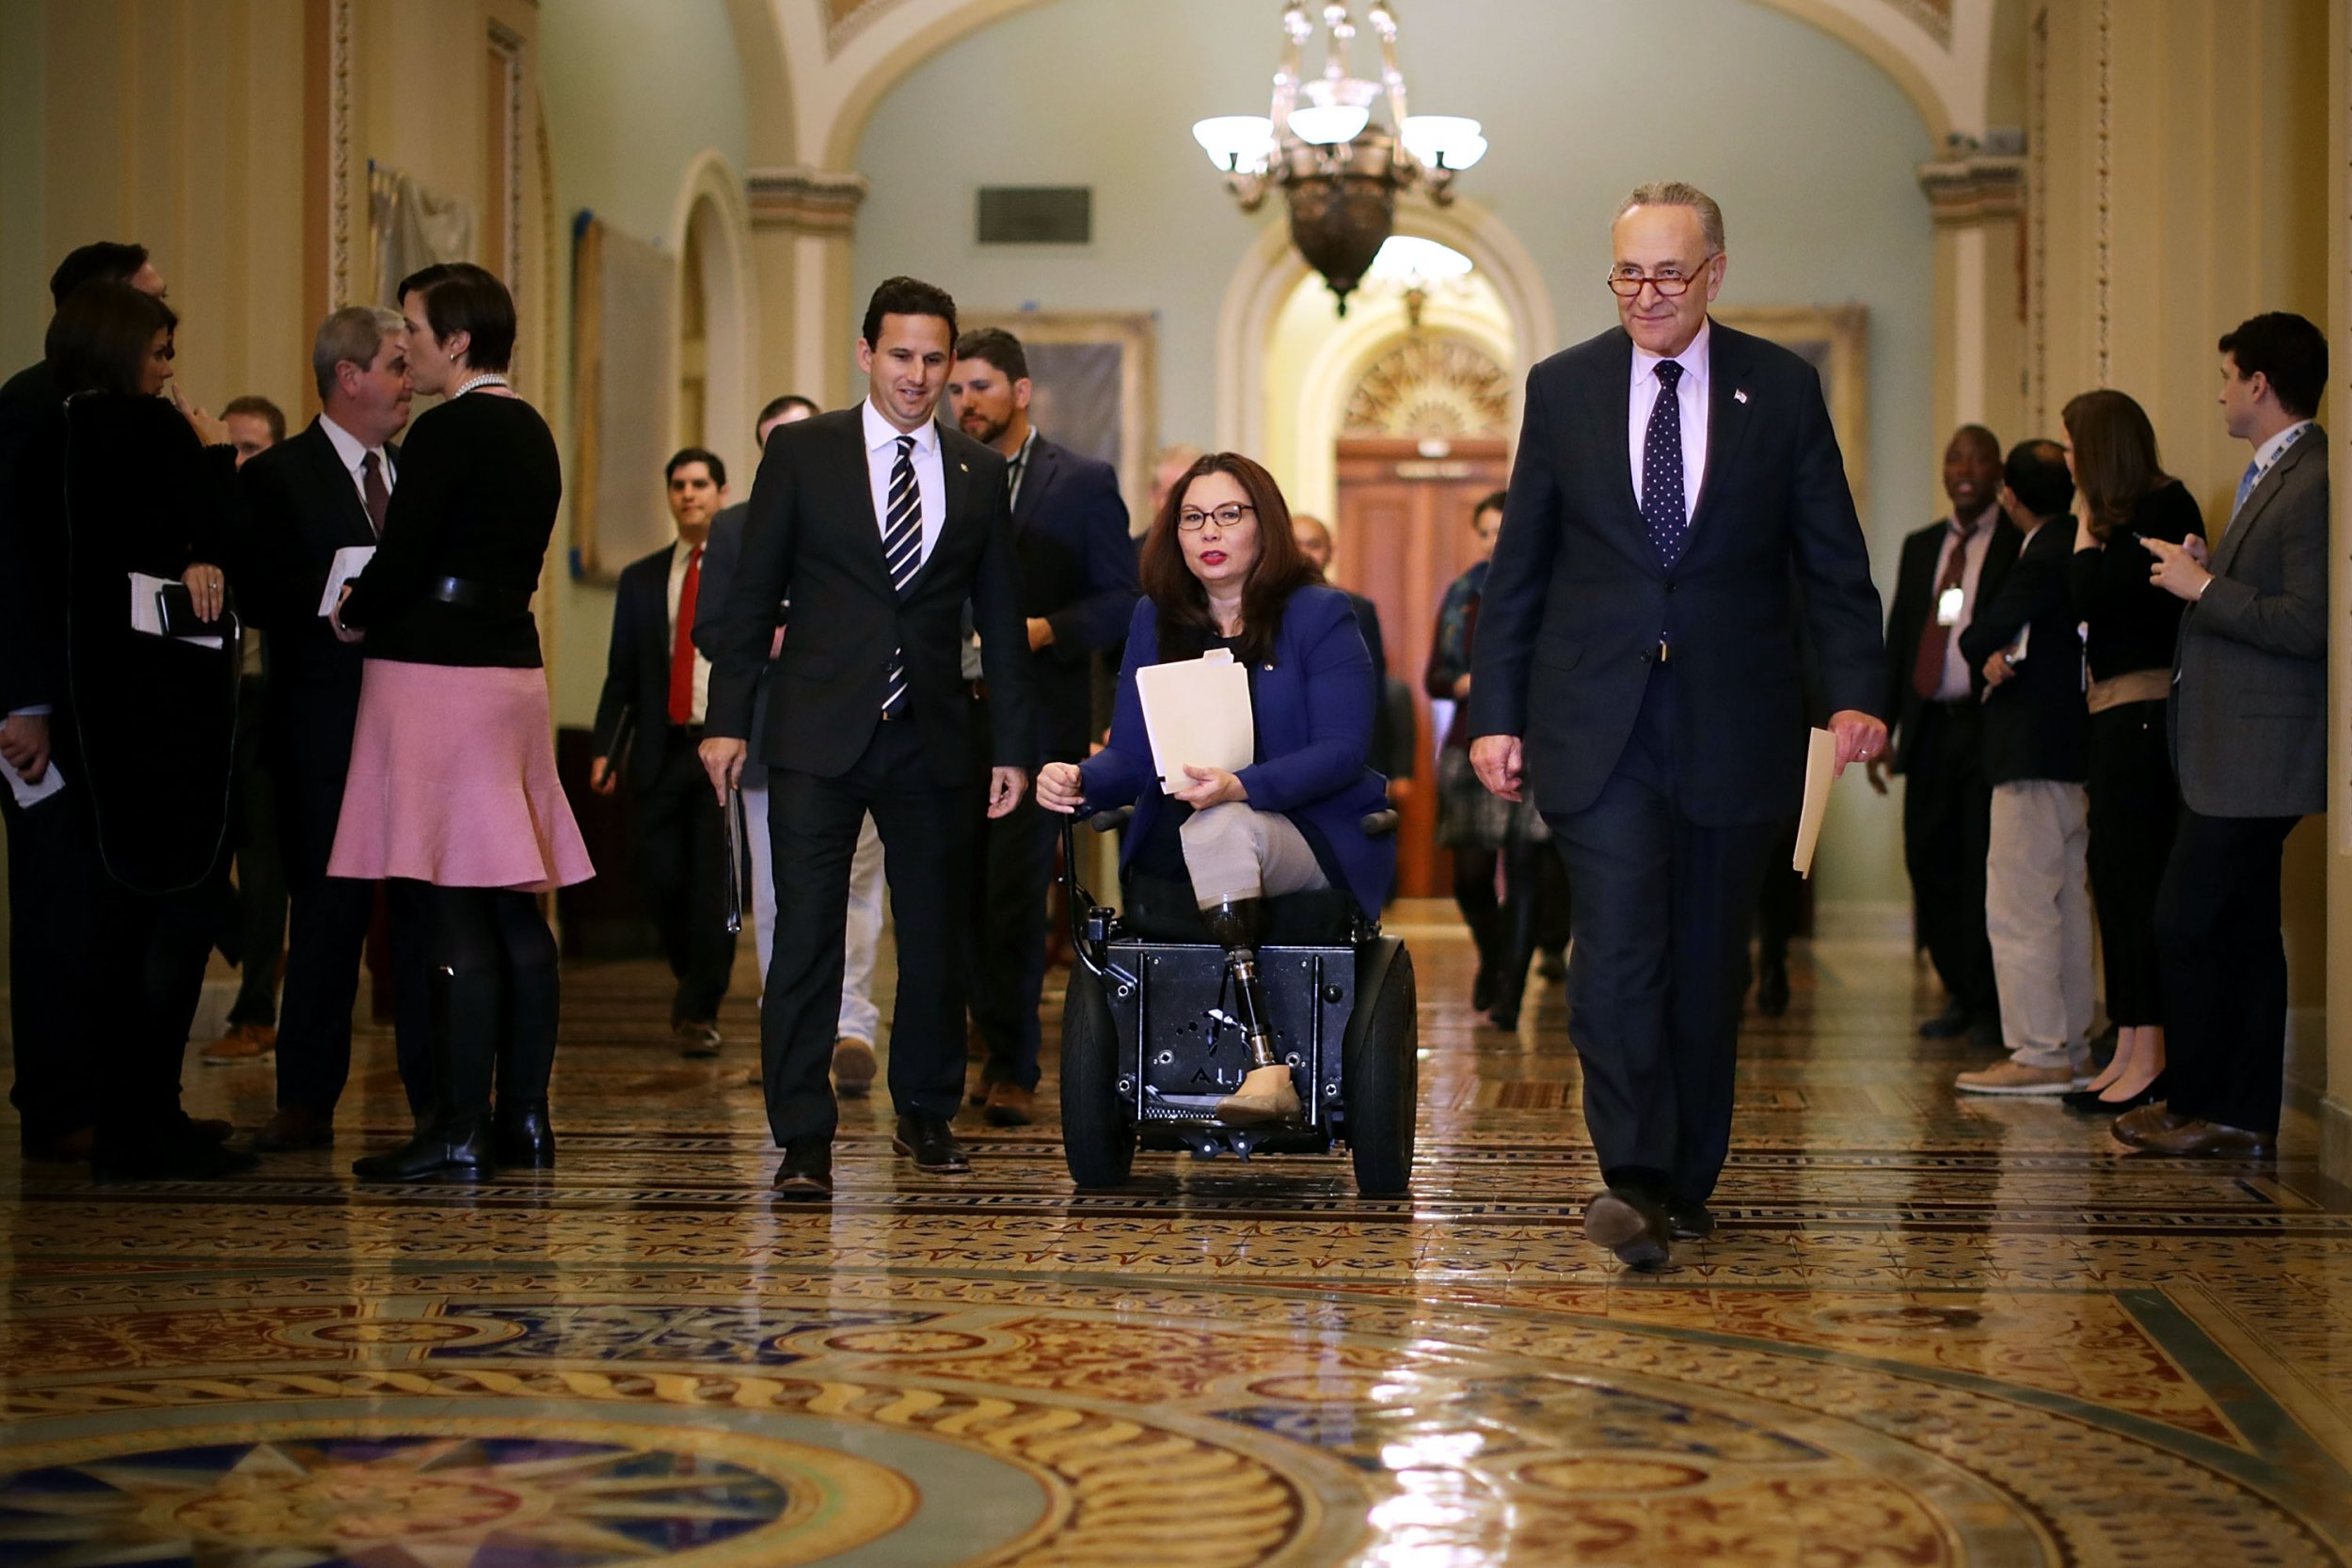 Some Republicans Wanted Tammy Duckworth To Vote With Her Baby From Senate Cloakroom